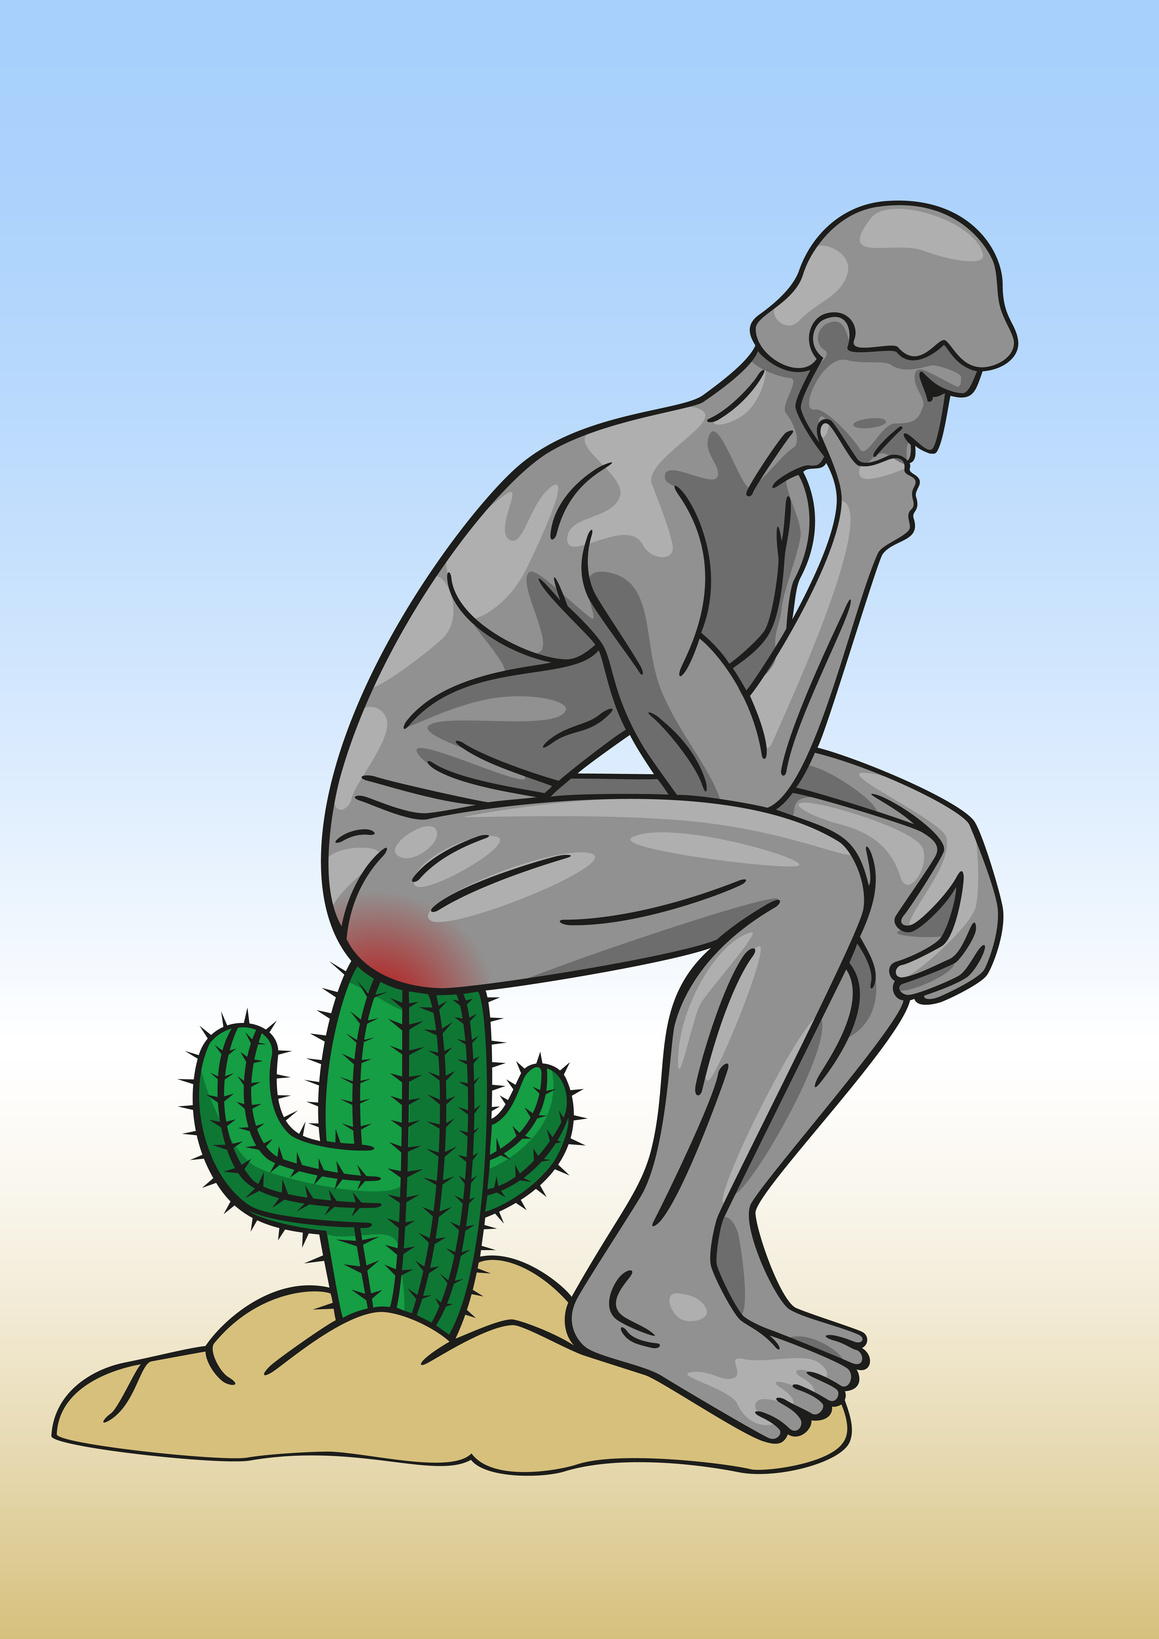 Thinking man pose sitting on cactus